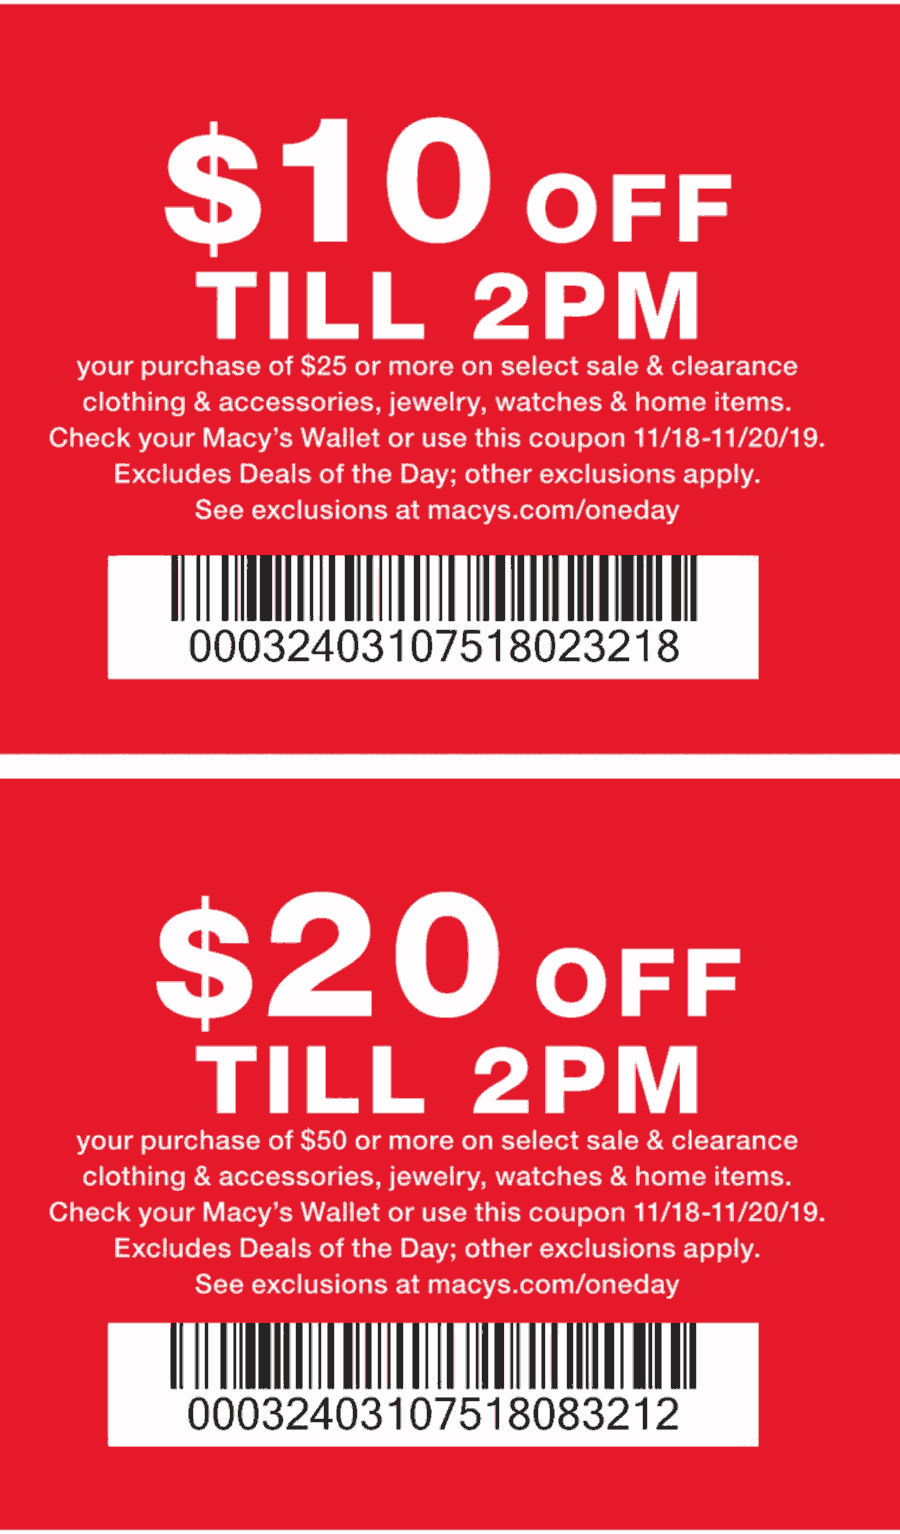 Macys coupons & promo code for [April 2020]